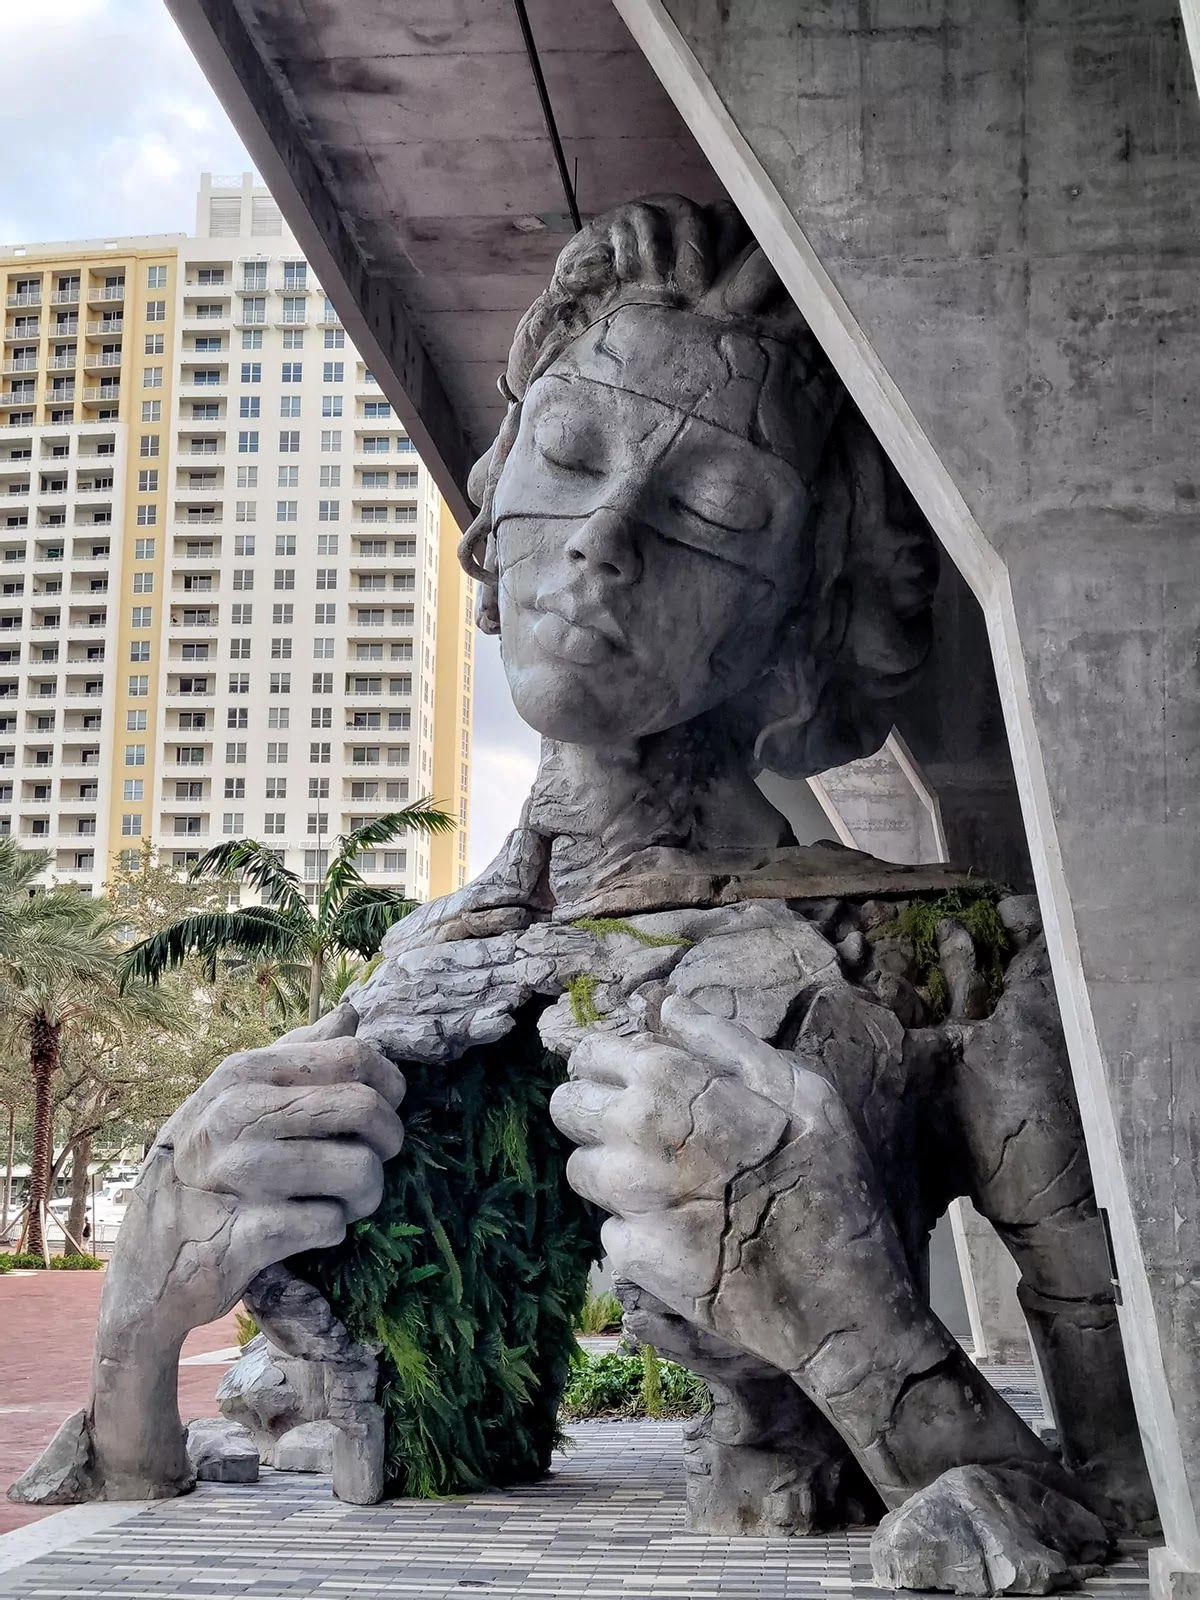 Amazing Giant Sculpture In Fort Lauderdale Stands As A Symbol Of Hope After The Year Of 2020